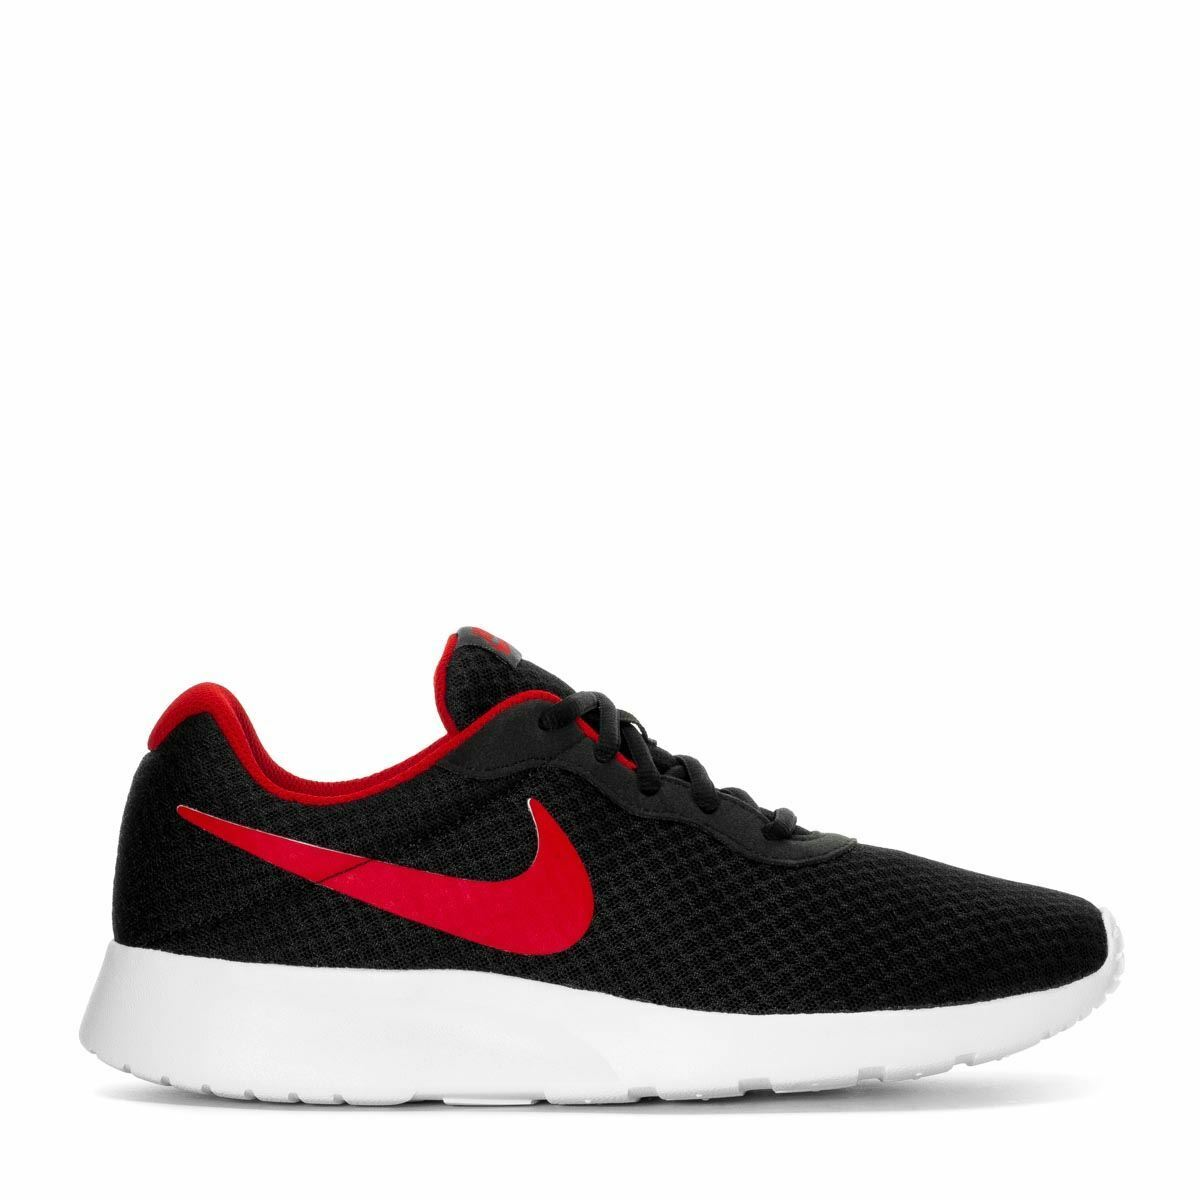 New Nike Tanjun Black Red 812654-007 Running shoes Men